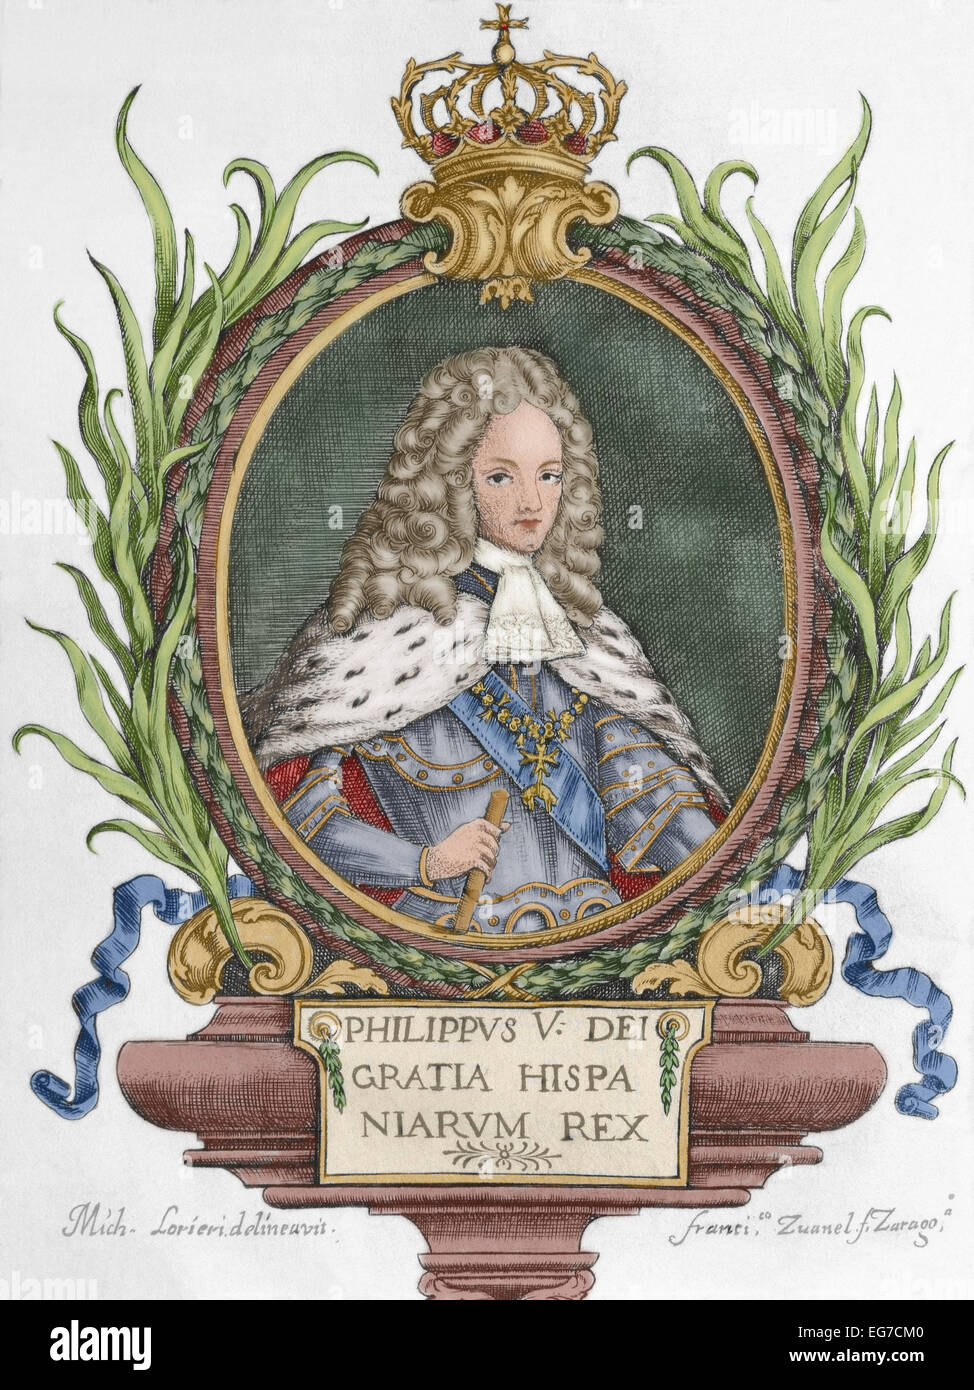 Philip V (1683-1746). King of Spain (1700-january, 1724 and september 1724-1746). He abdicated in favour of his Stock Photo